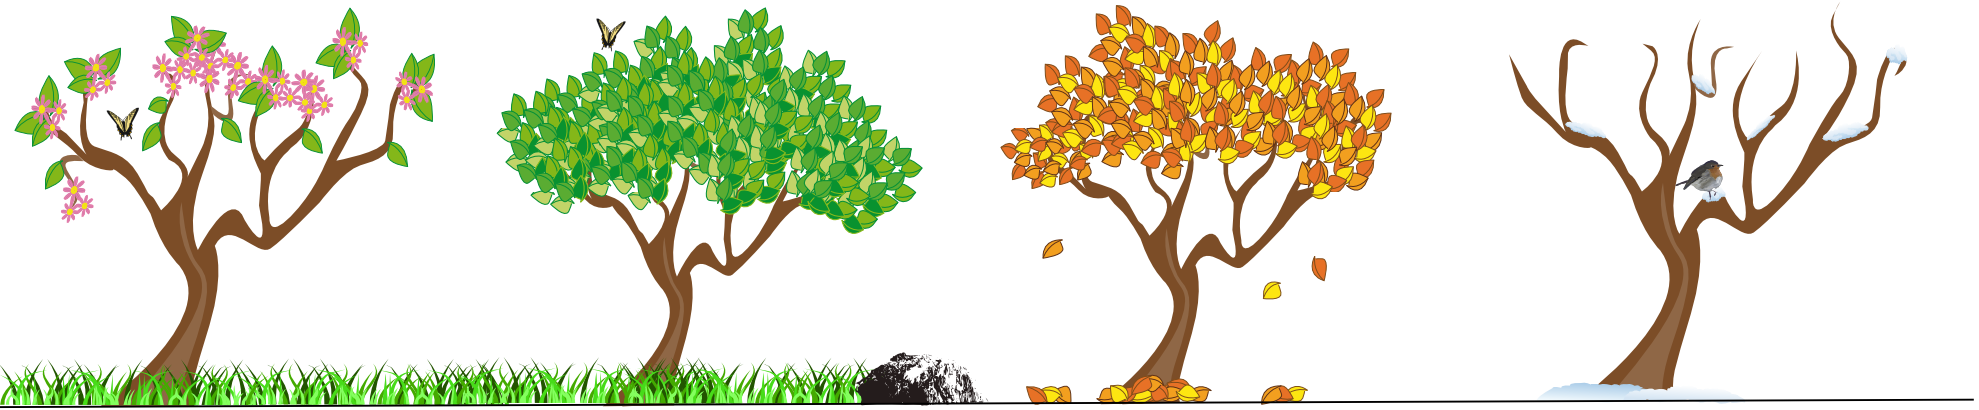 Clip Art Seasons Clipart four seasons tree clipart kid trees 2012 april clipartist net art clip clipart